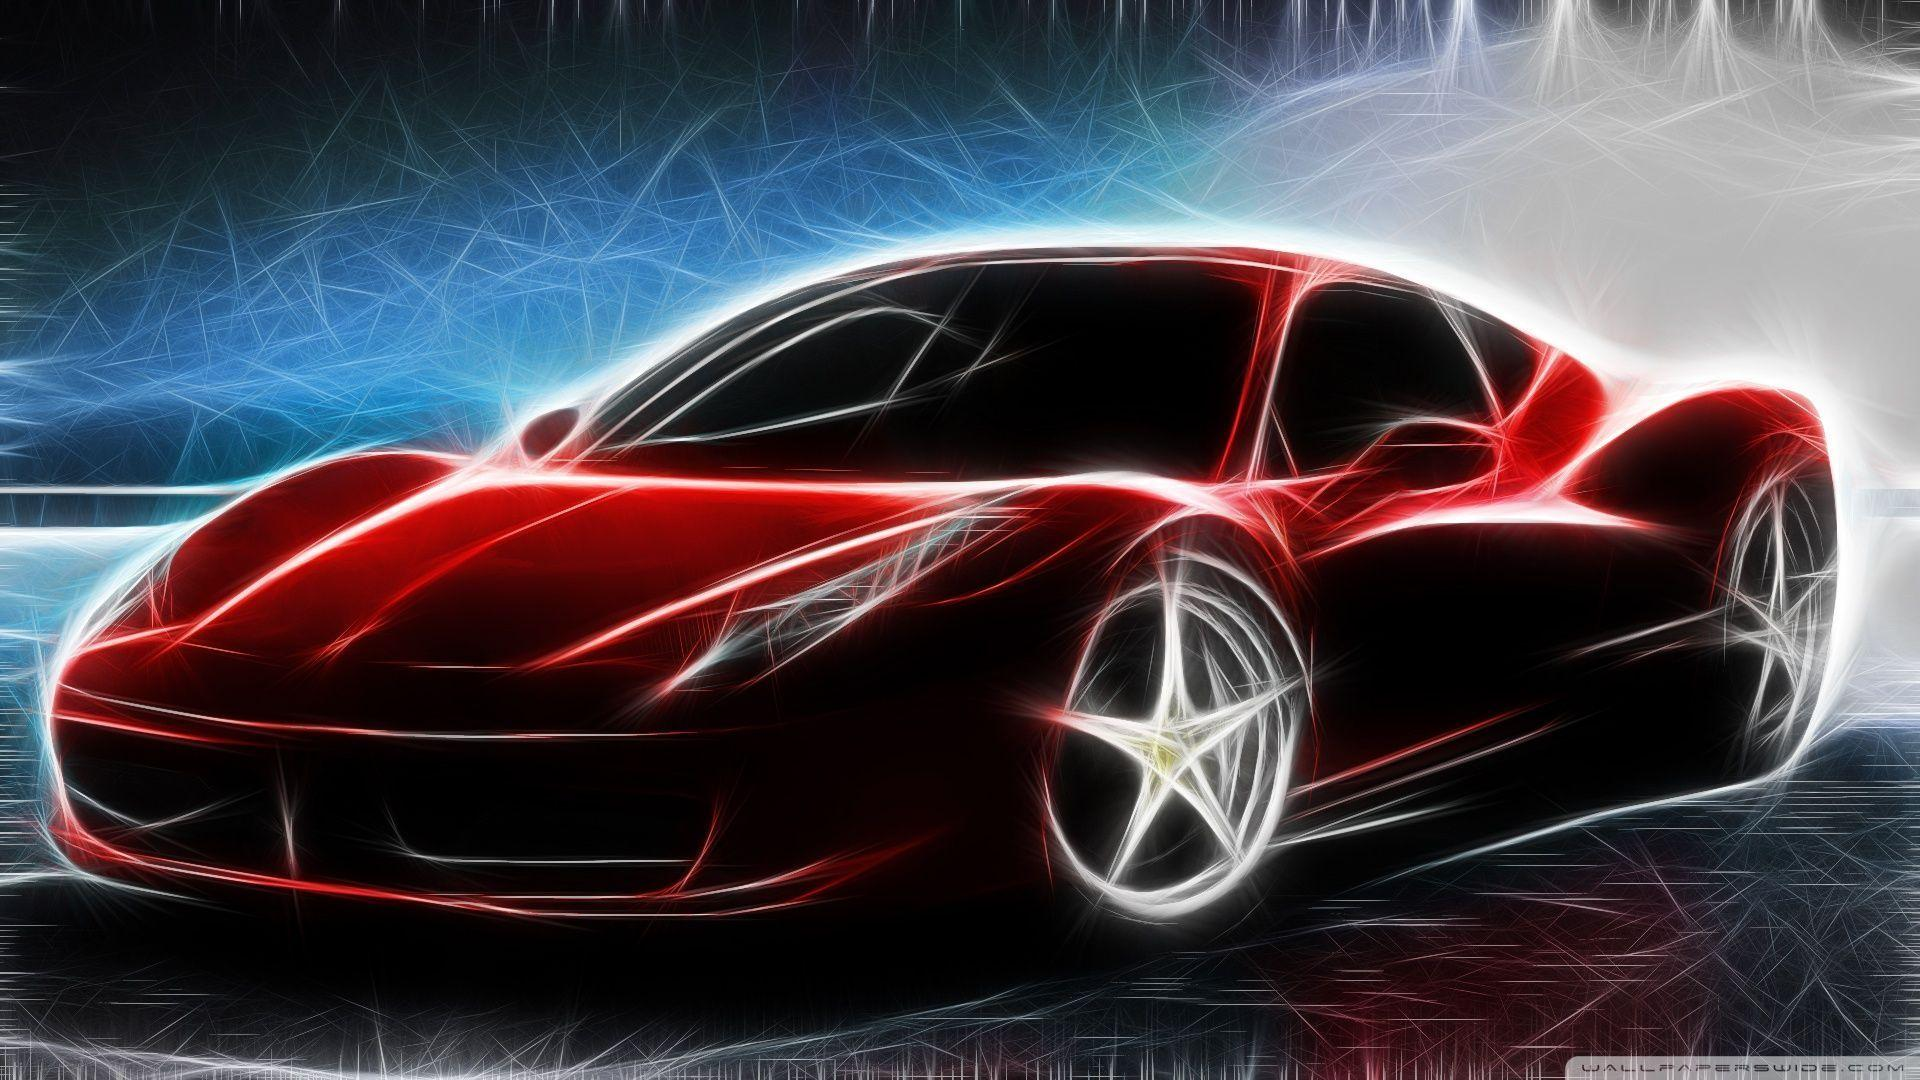 Cool Ferrari Wallpapers On Wallpaperdog